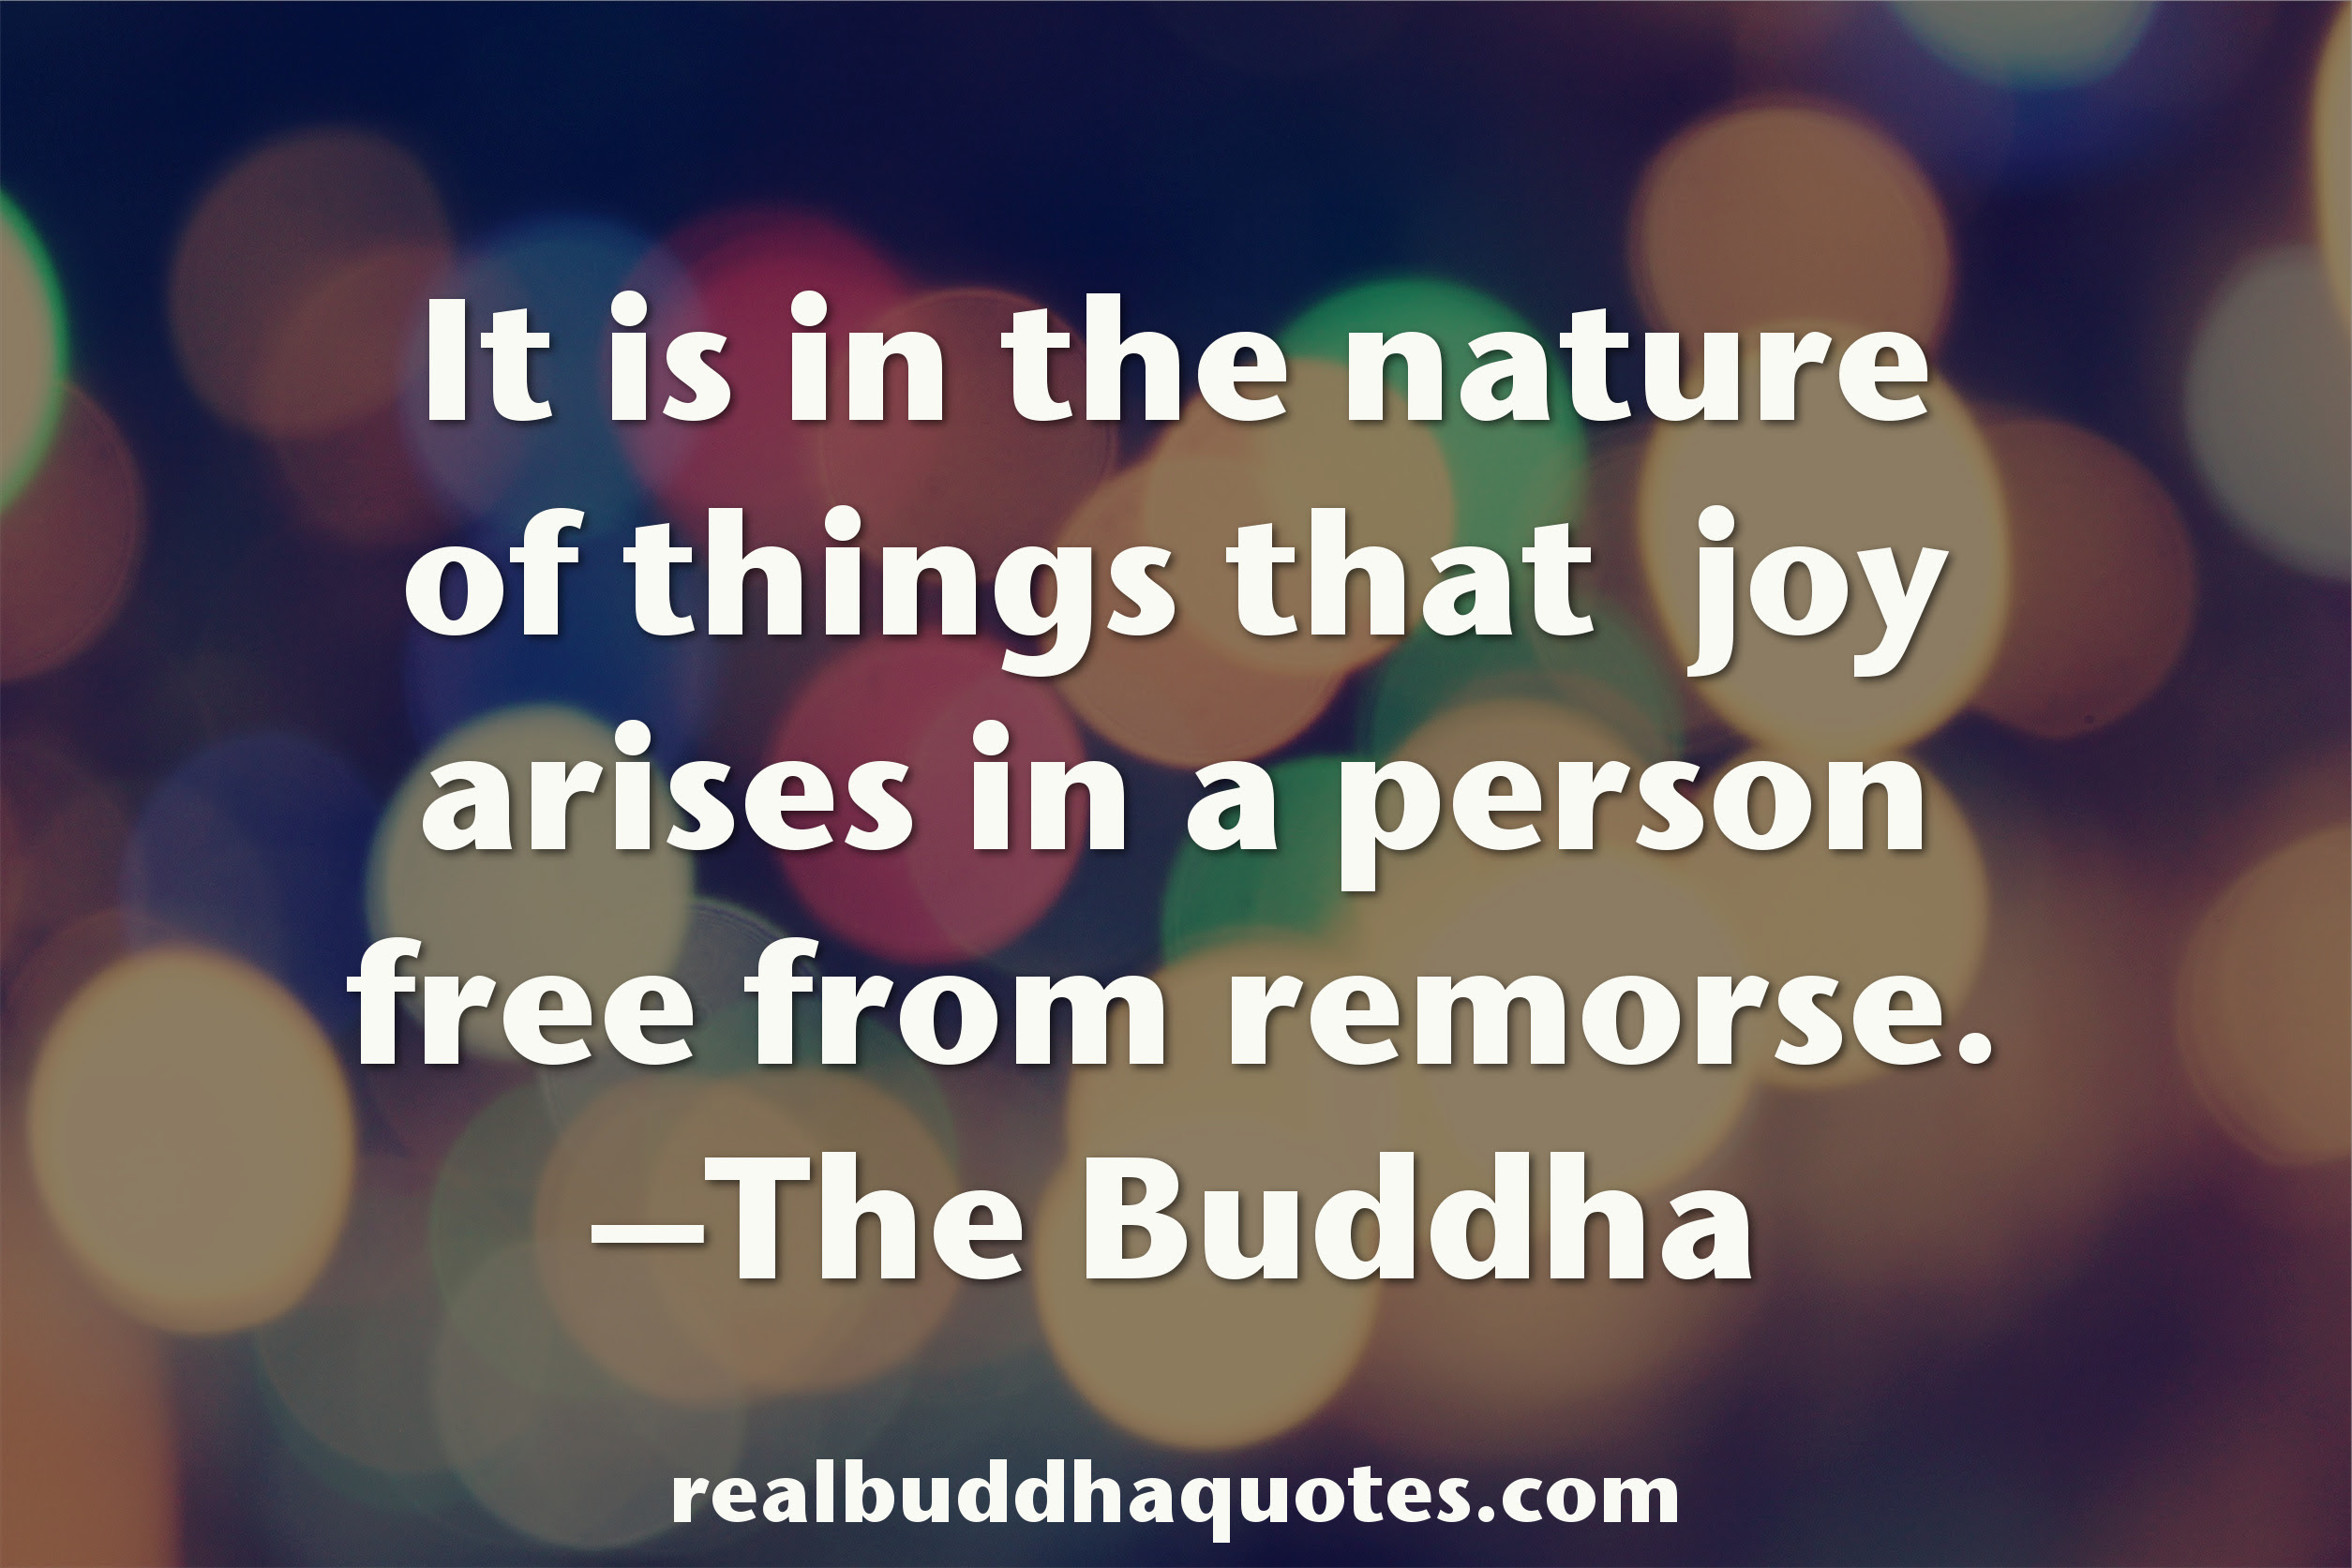 Real Buddha Quotes Verified Quotes From The Buddhist Scriptures